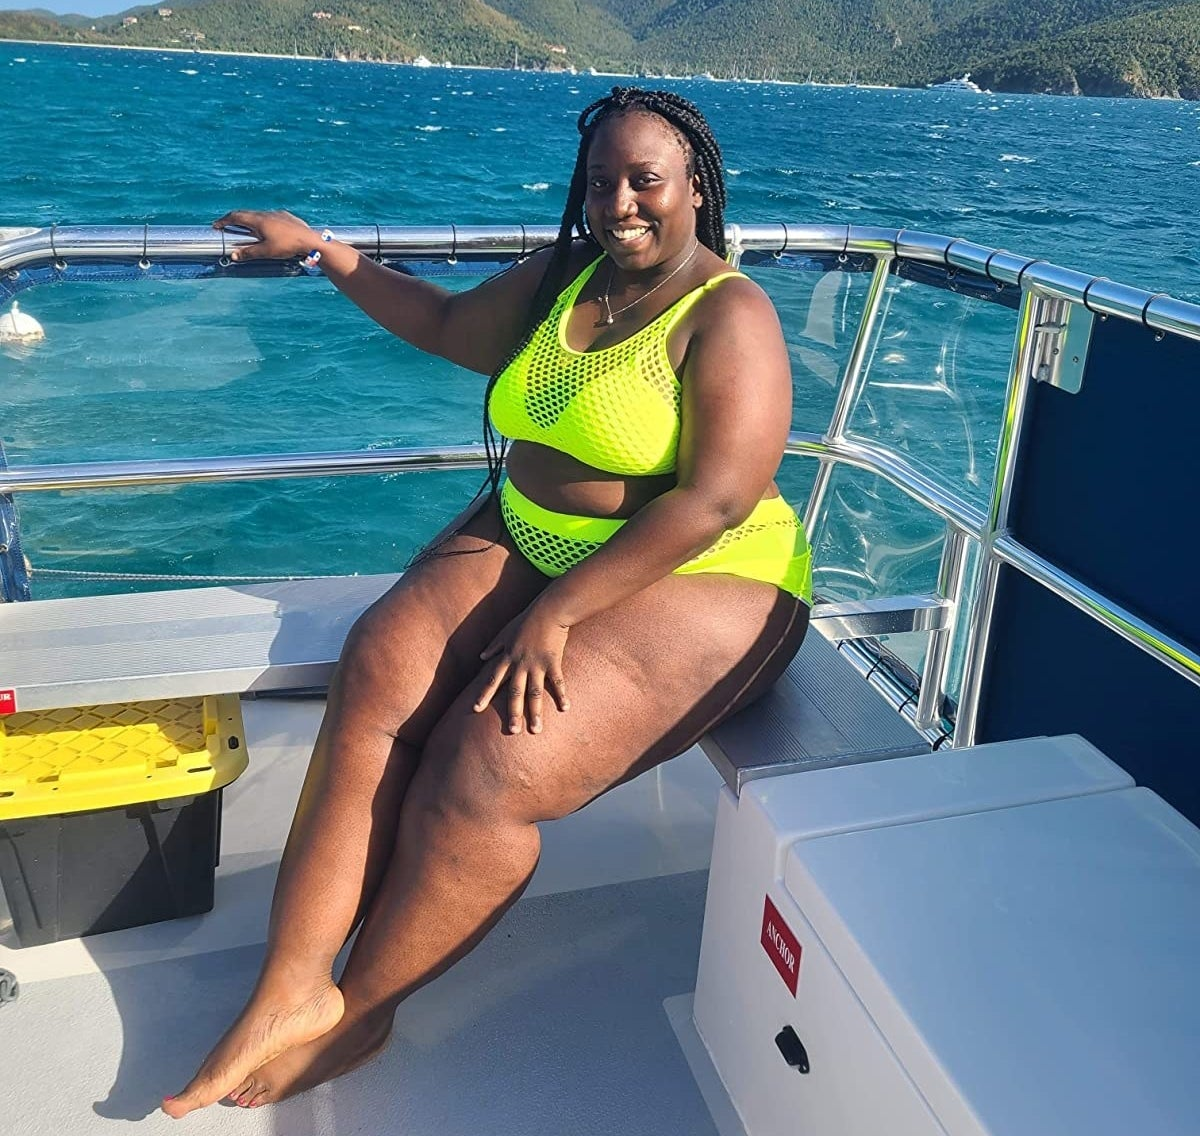 Reviewer wearing the neon green bikini set with fishnet overlay